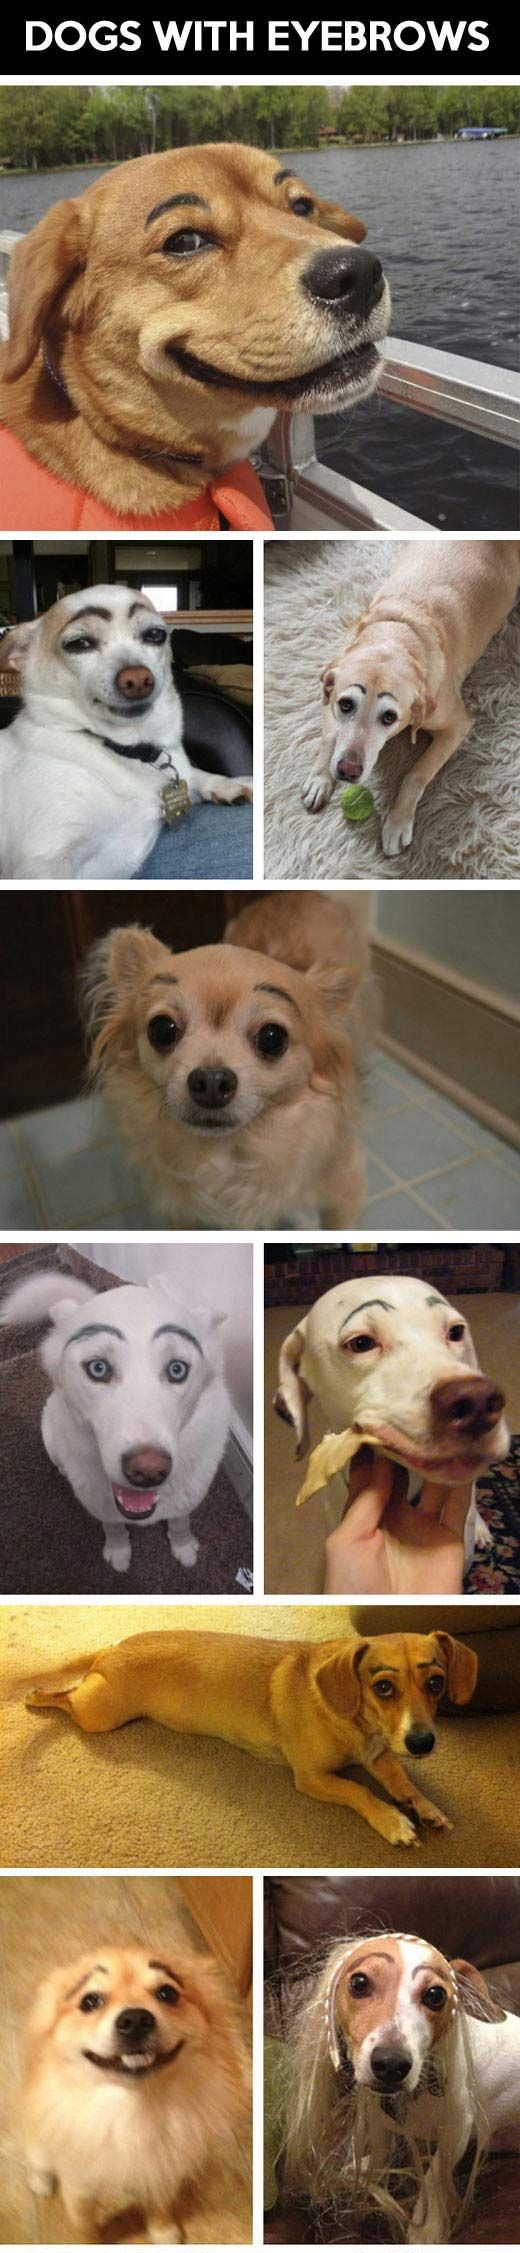 Dogs with eyebrows. I showed someone this pin a while ago and she got all upset and asked me how I'd like it if someone drew massive eyebrows on me and laughed at me too. It's not cruel! It's doggy art!